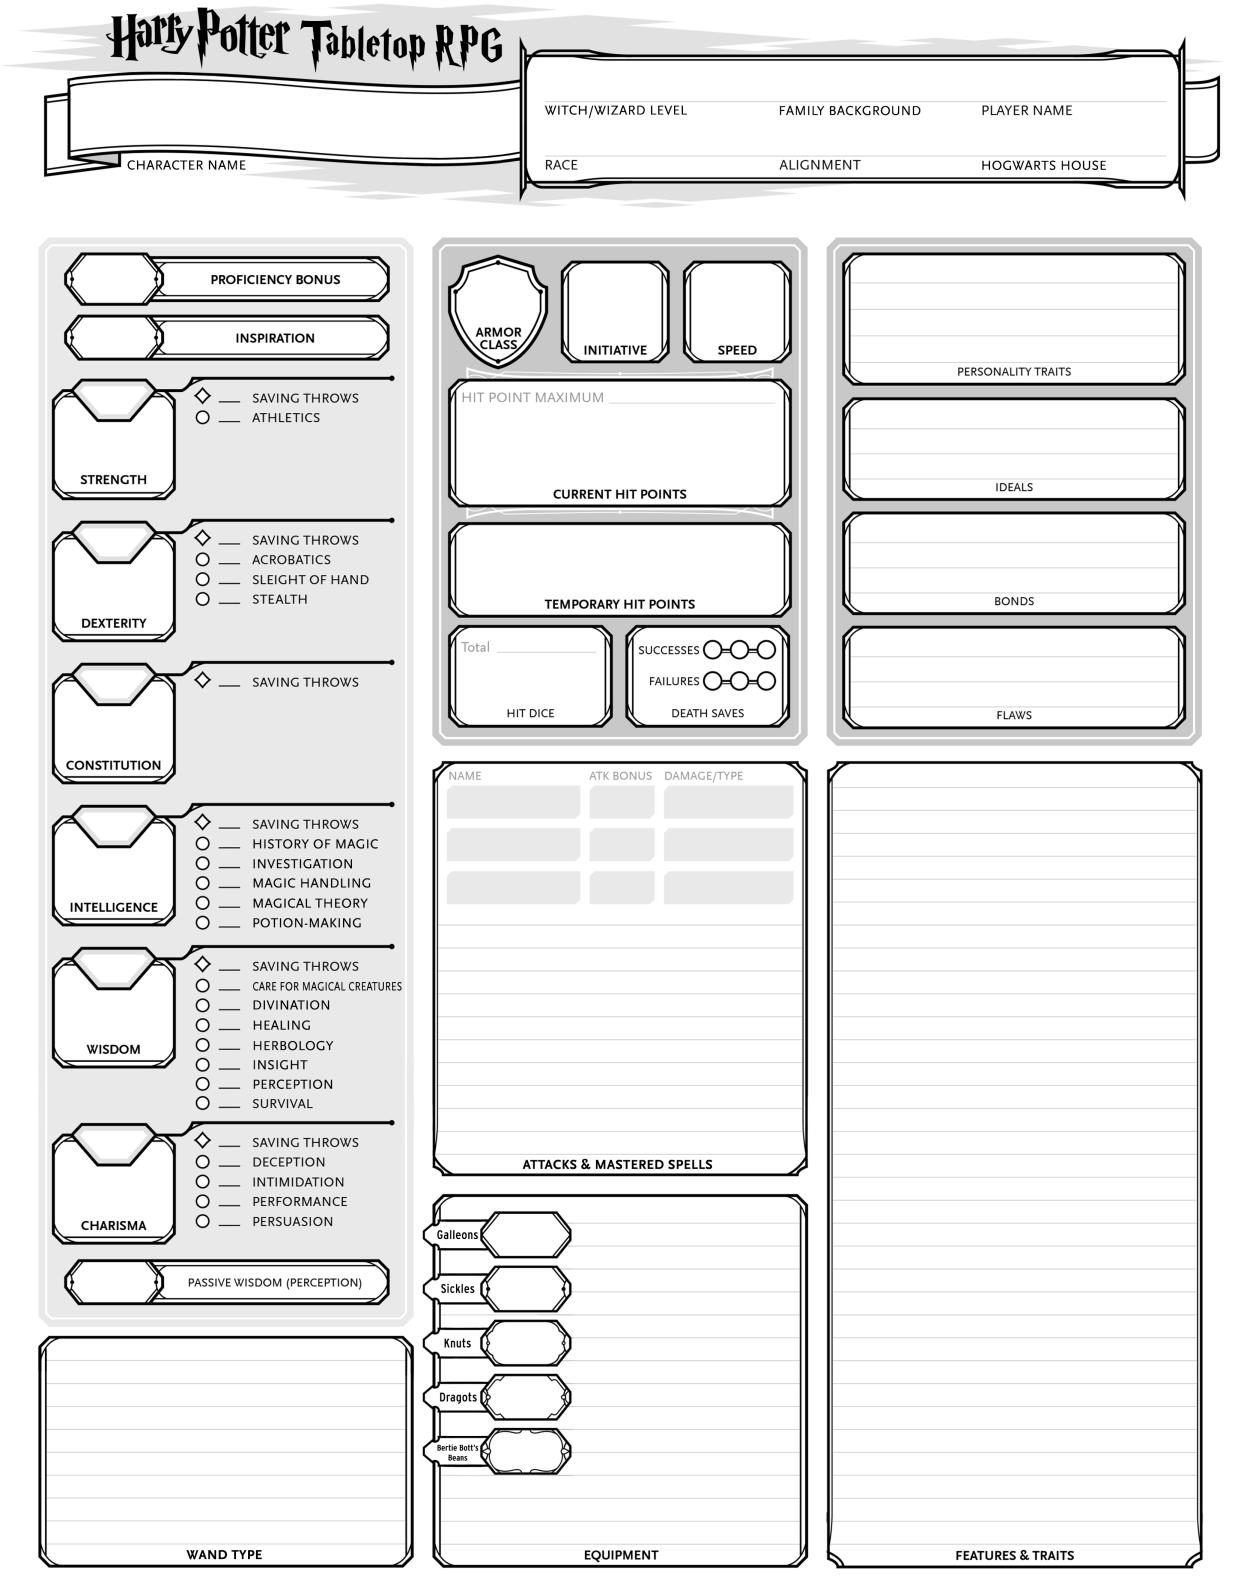 Community Forums Character Sheet Request Harry Potter Tabletop Rpg Version 4 Roll20 Online Virtual Tabletop